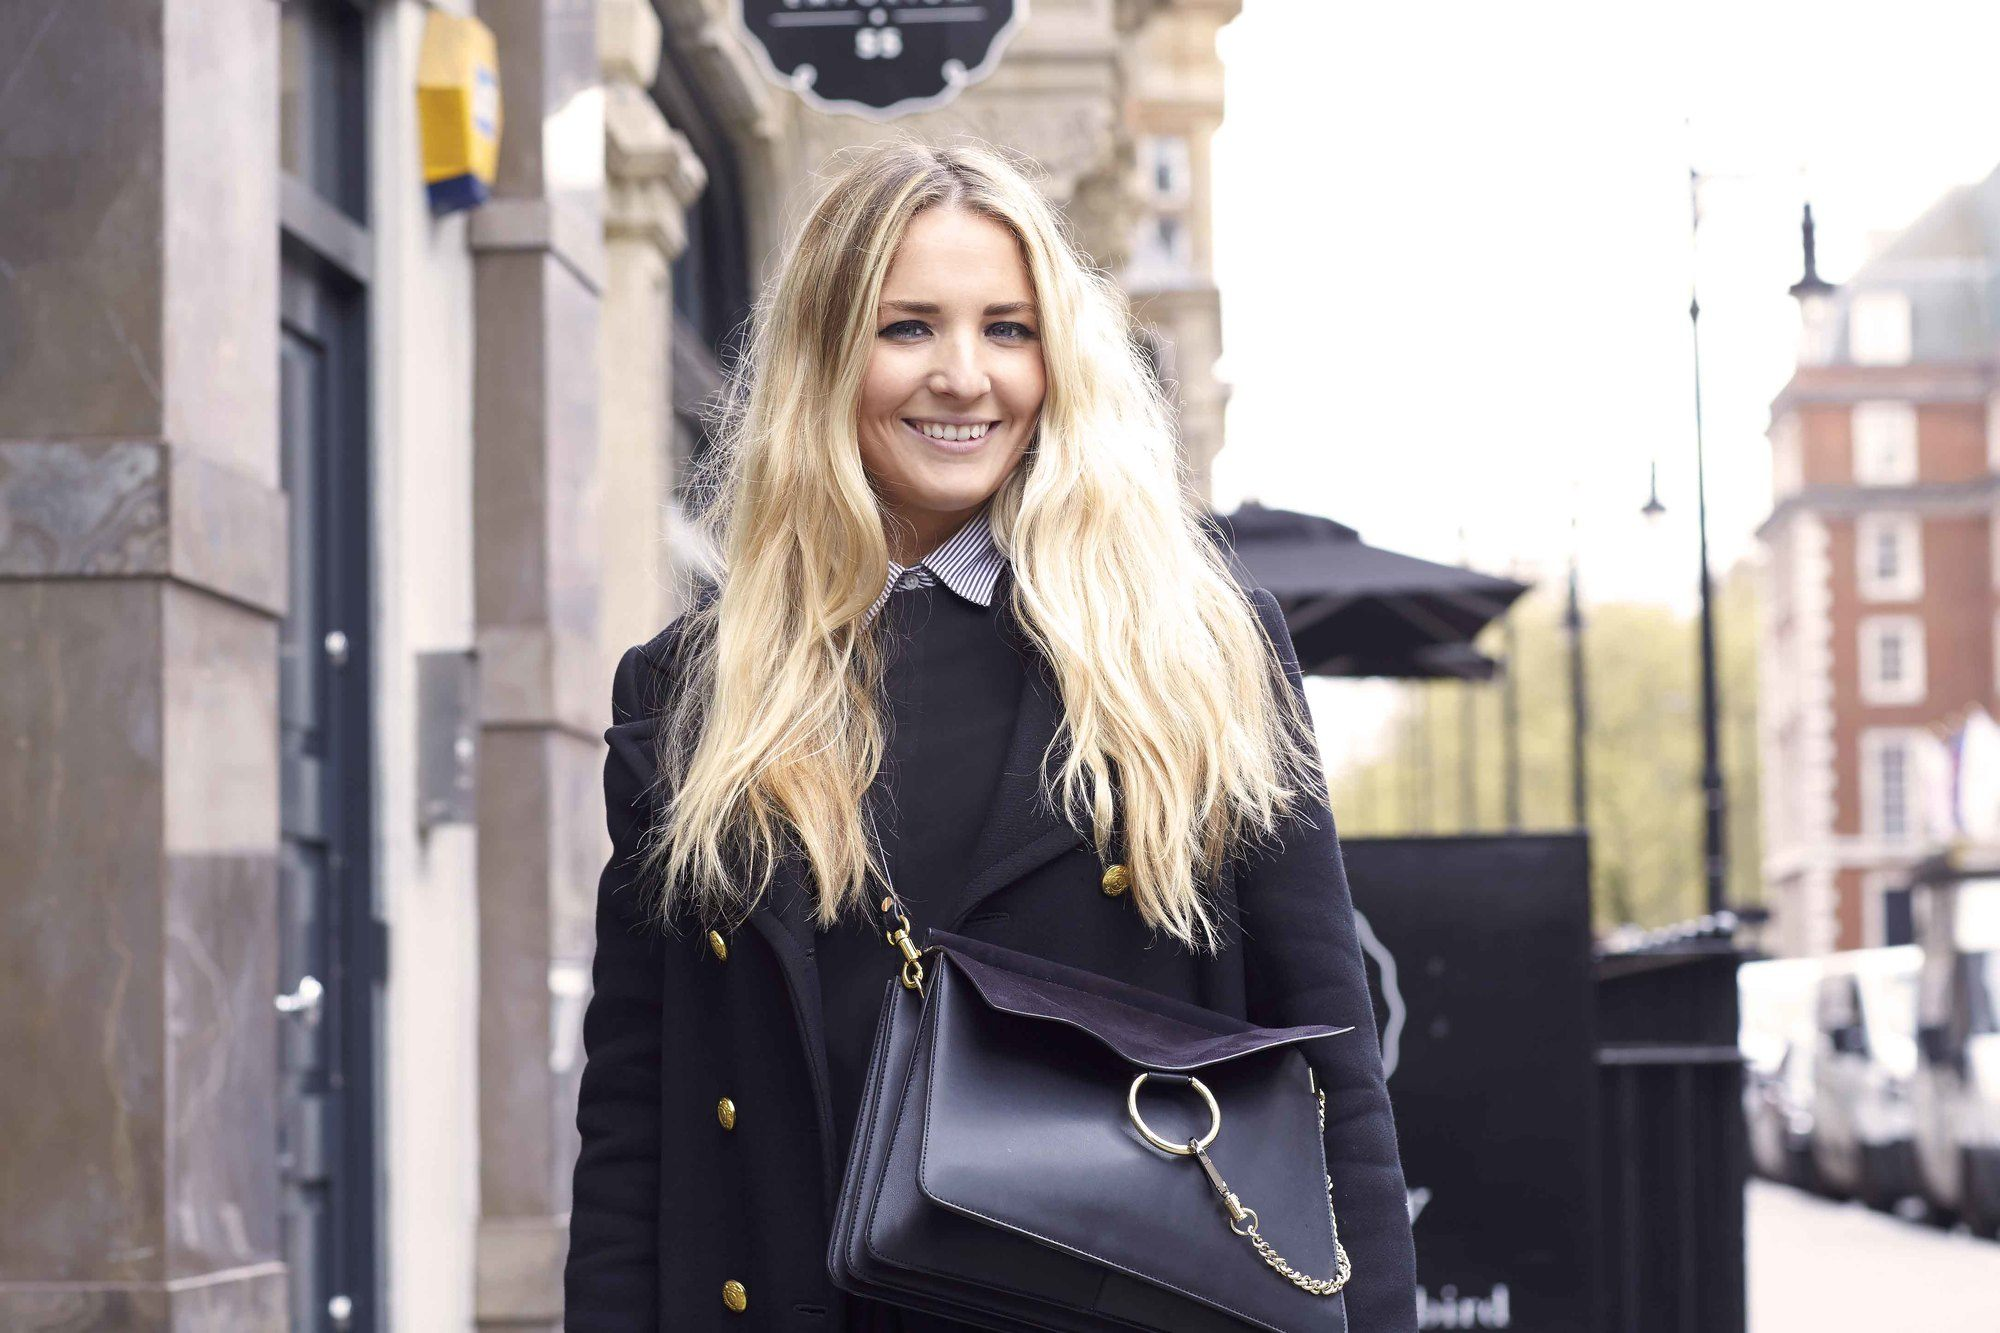 ash blonde: close up shot of woman with long wavy blonde hair, wearing all black and posing on the street